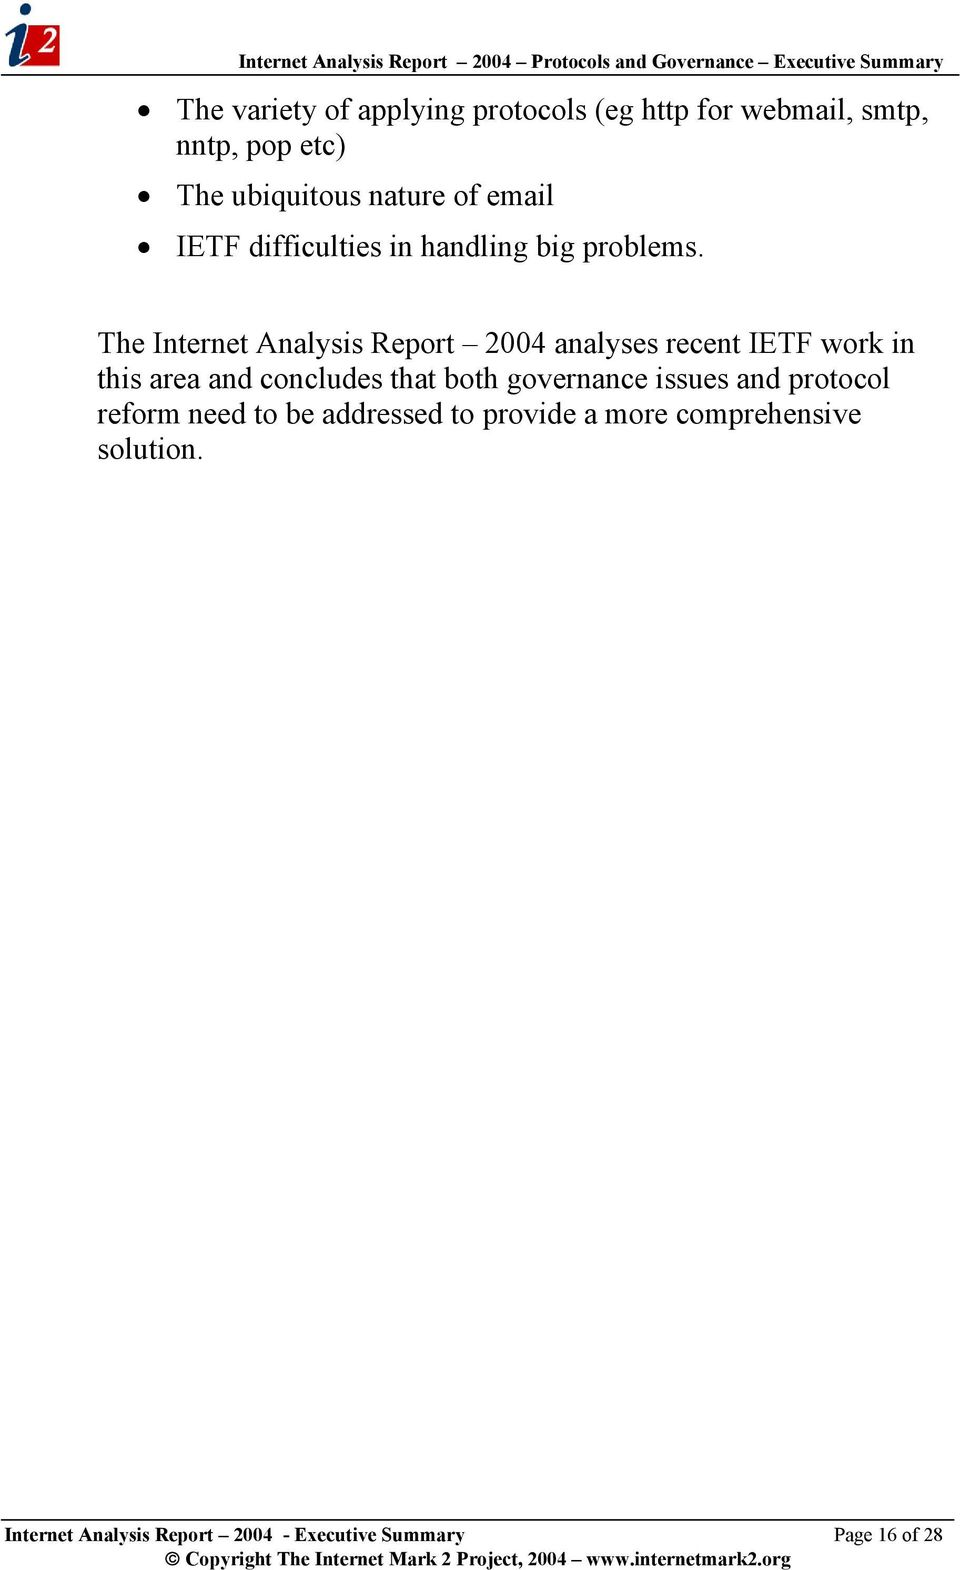 The Internet Analysis Report 2004 analyses recent IETF work in this area and concludes that both